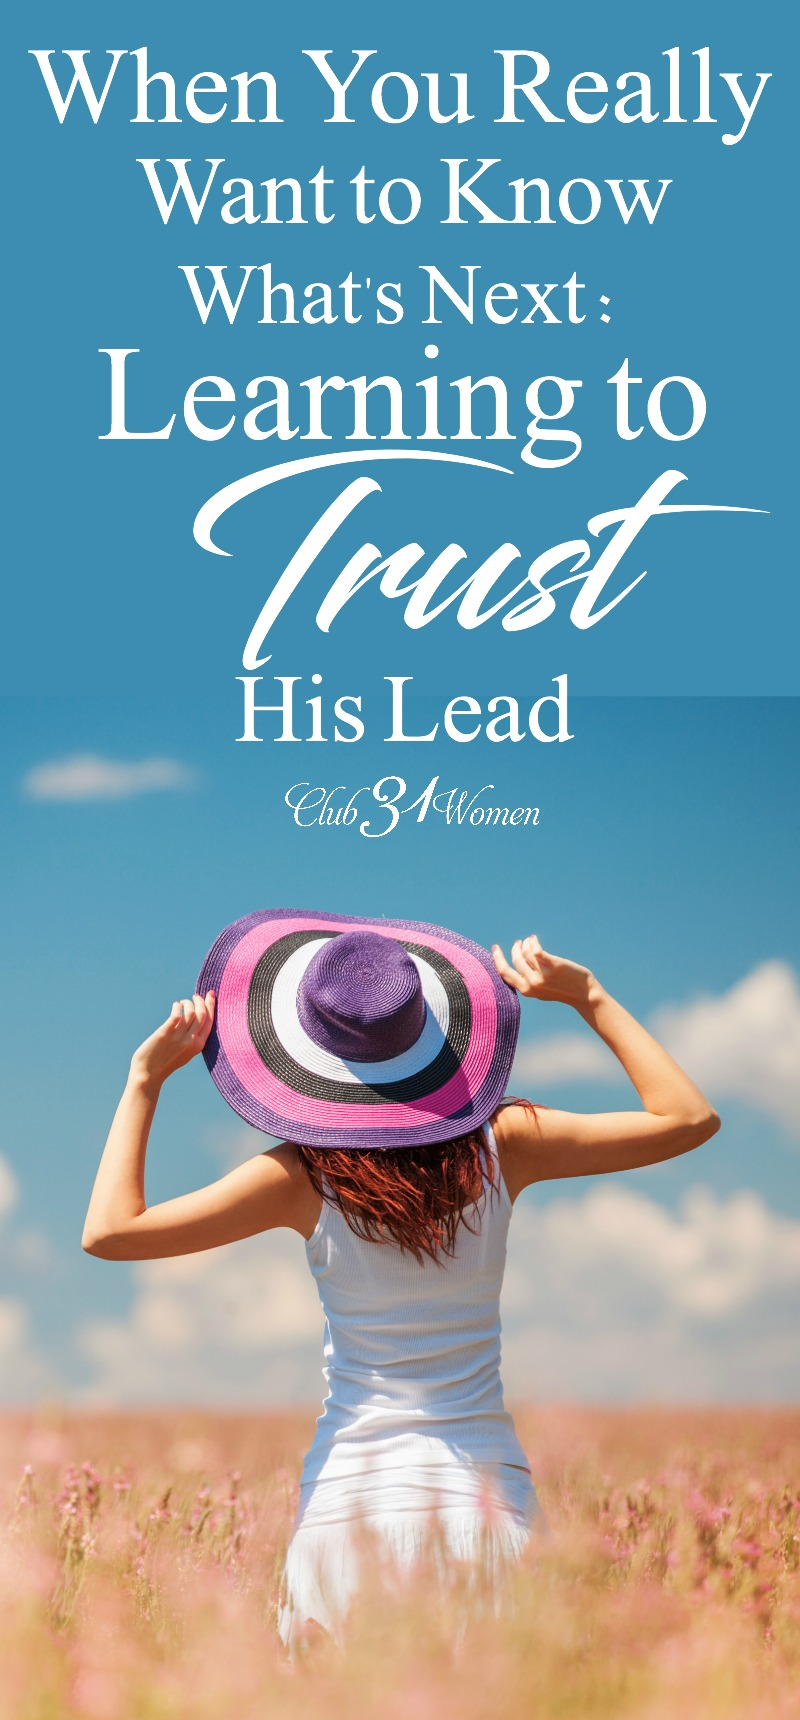 Sometimes we want to know every step of the plan God has for us. But God wants us to trust Him with what we cannot see and lead us in His will. via @Club31Women